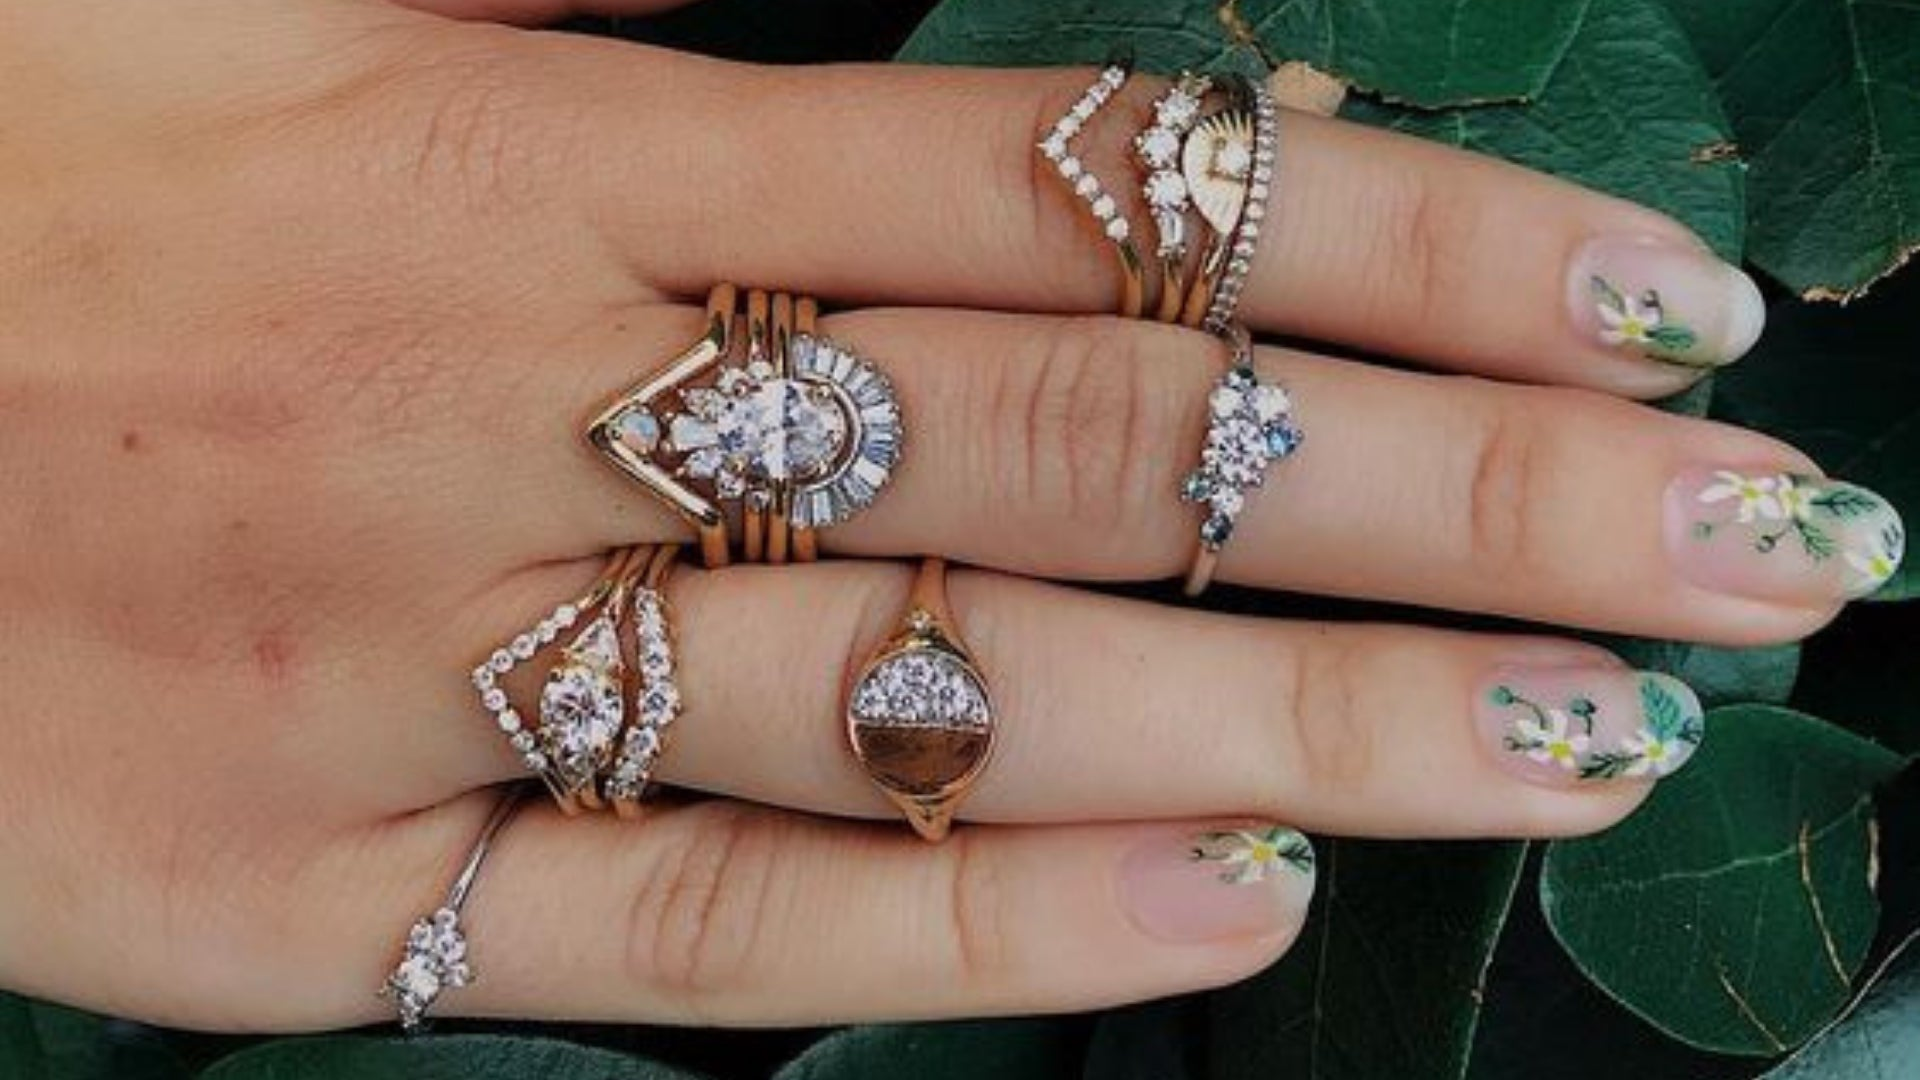 Engagement Rings 101: How To Choose The Perfect Ring